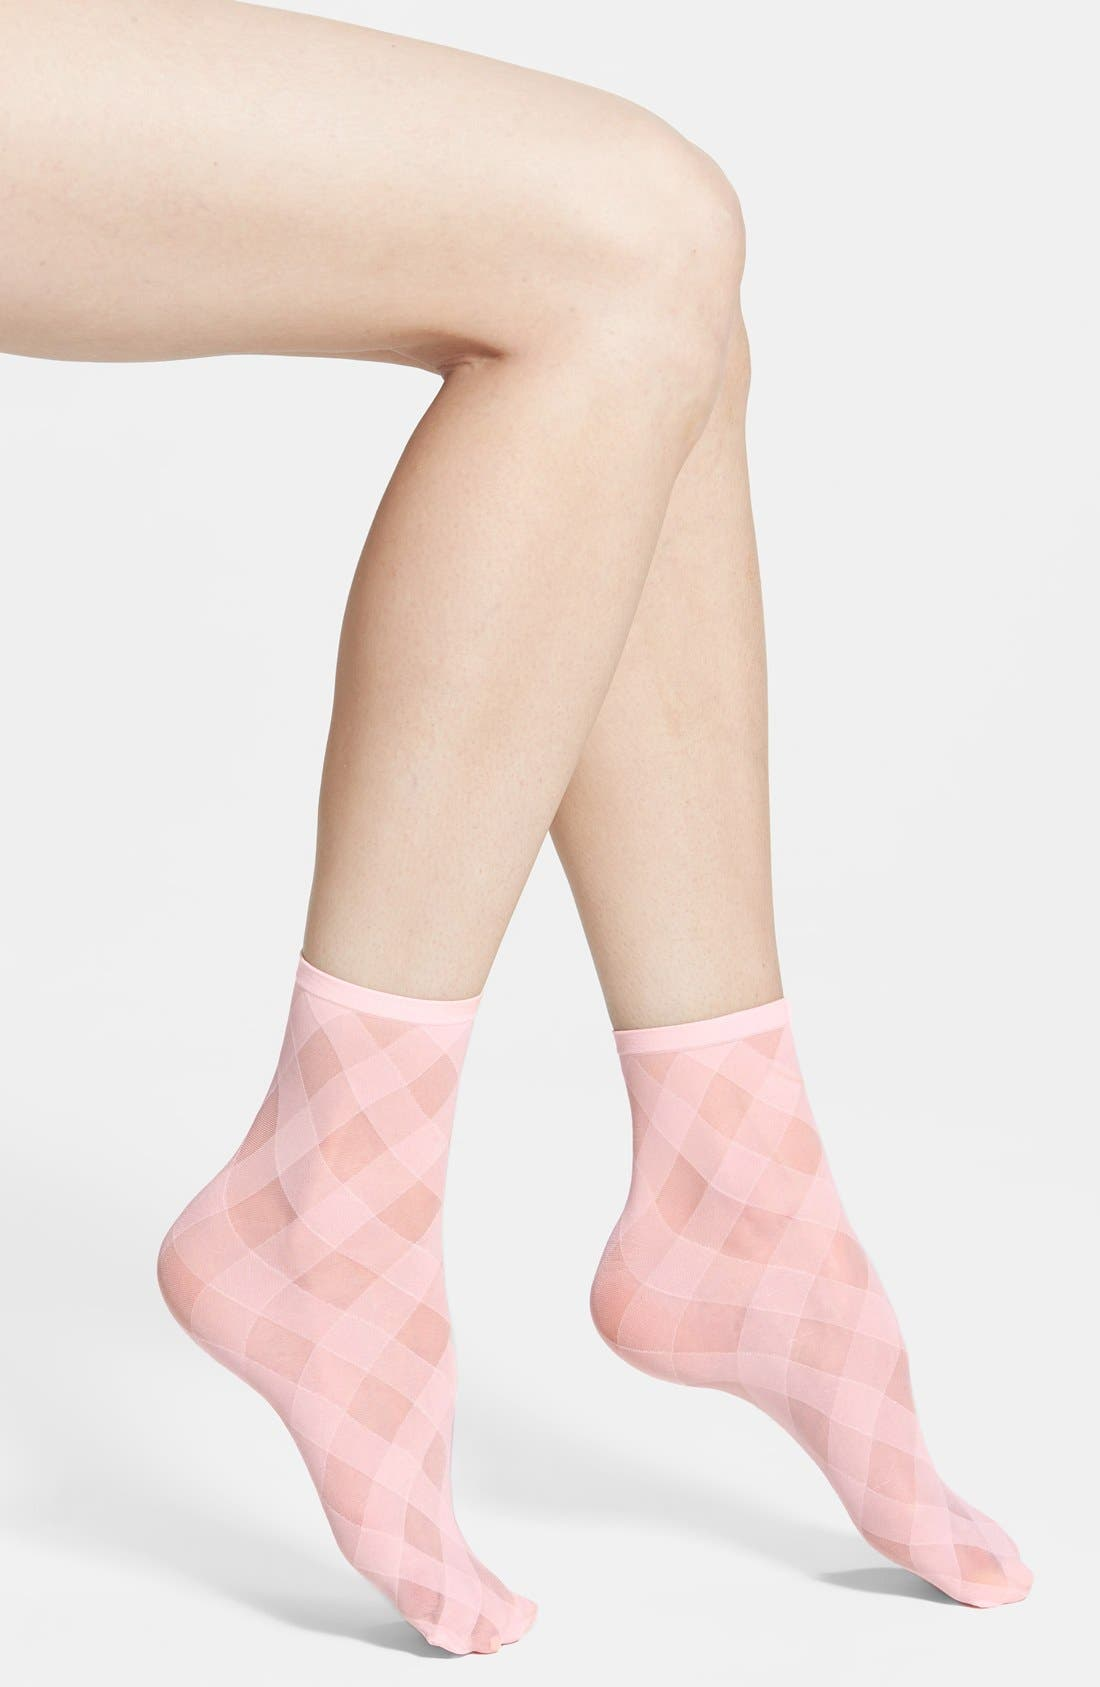 Main Image - Hue 'Diagonal Ribbon' Sheer Ankle Socks